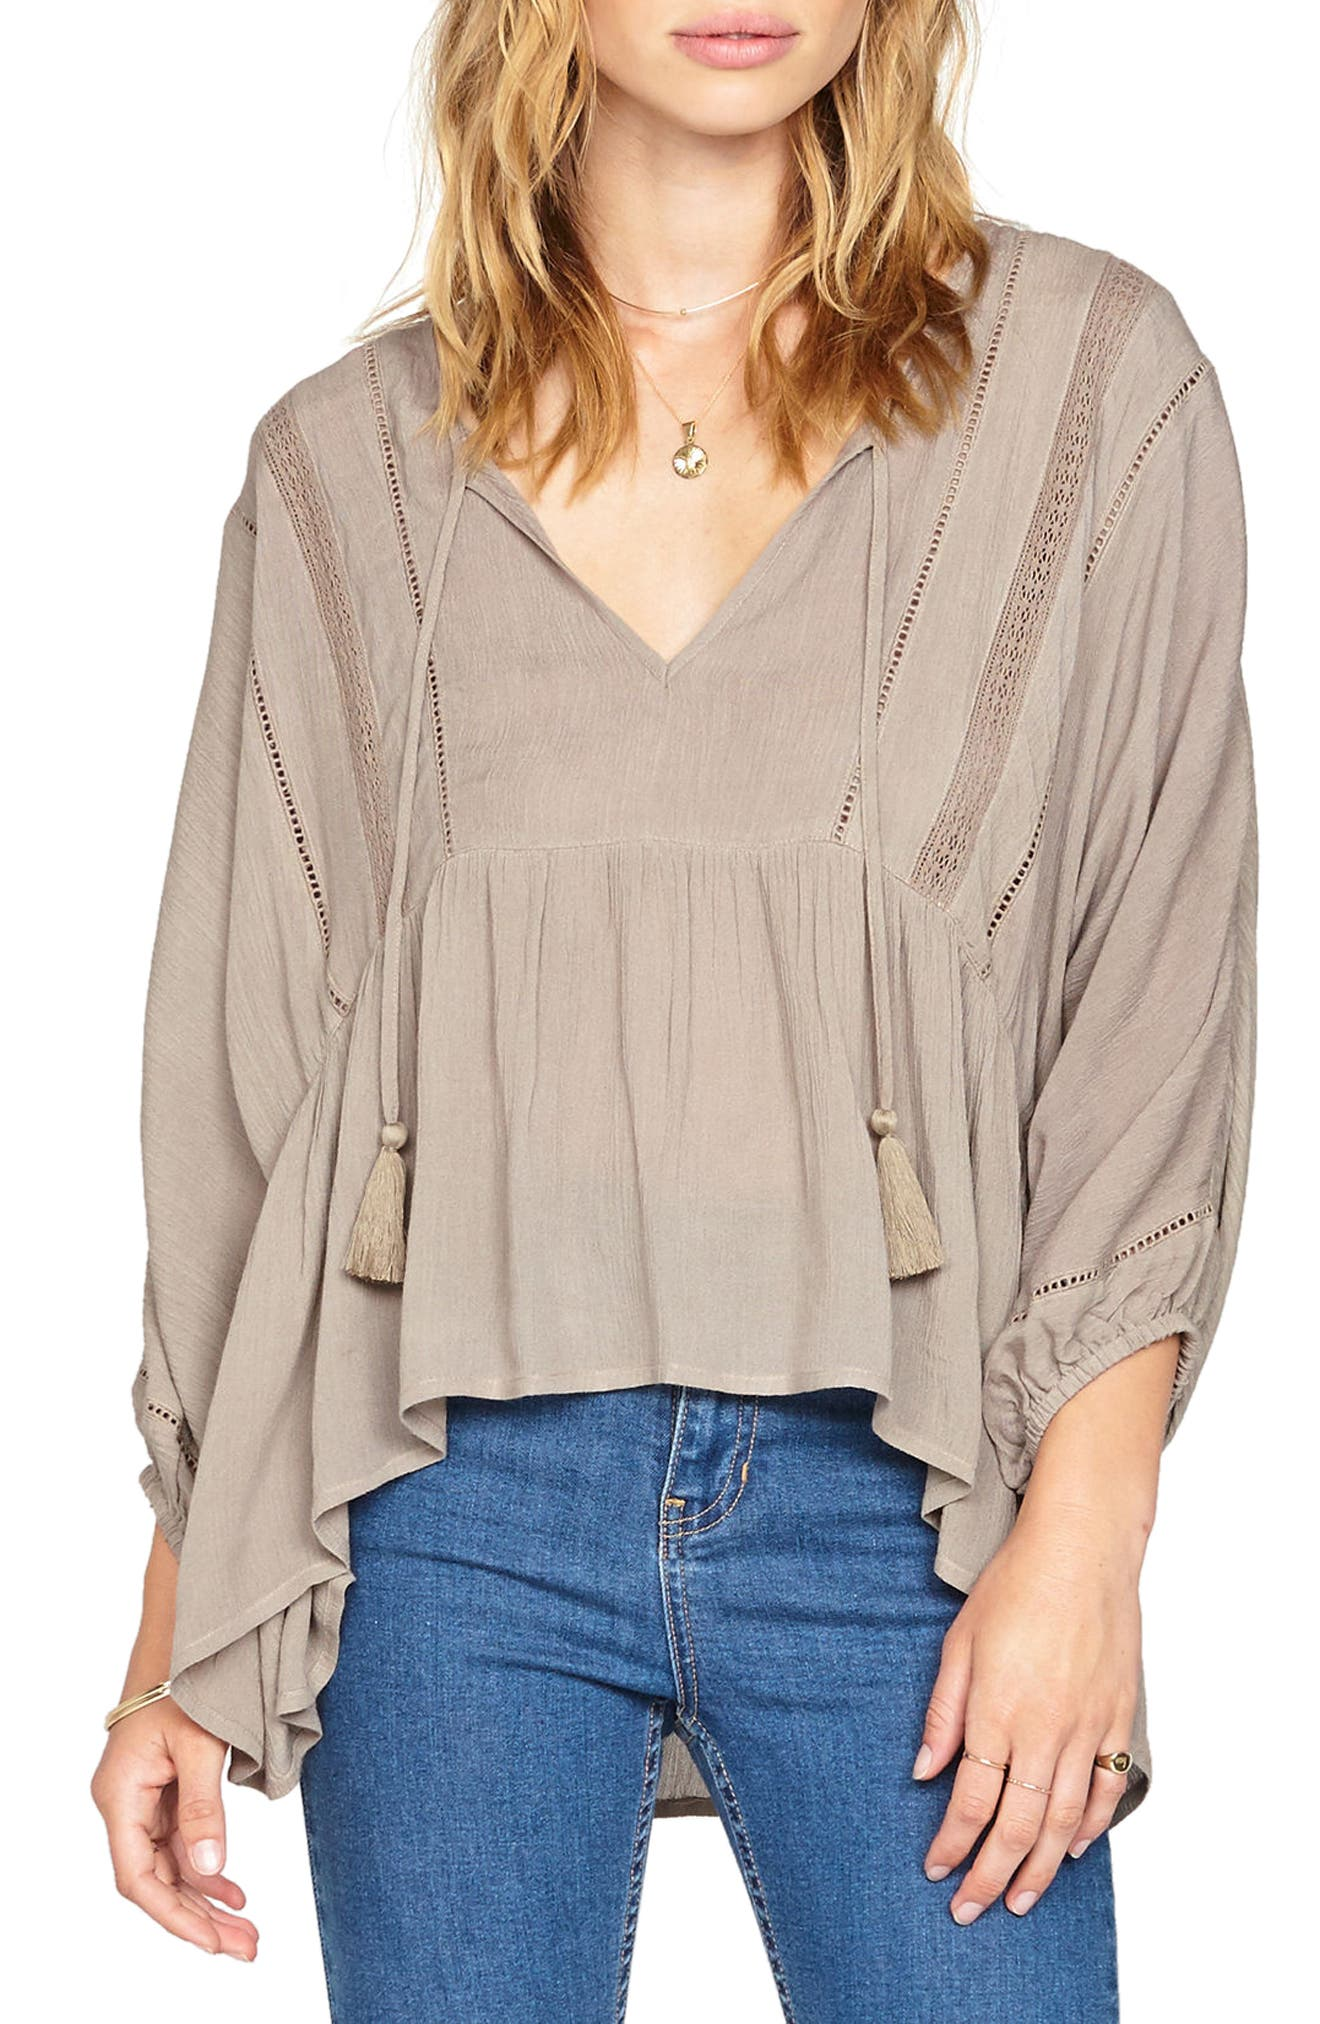 Cool Breeze Woven Top,                         Main,                         color, 020